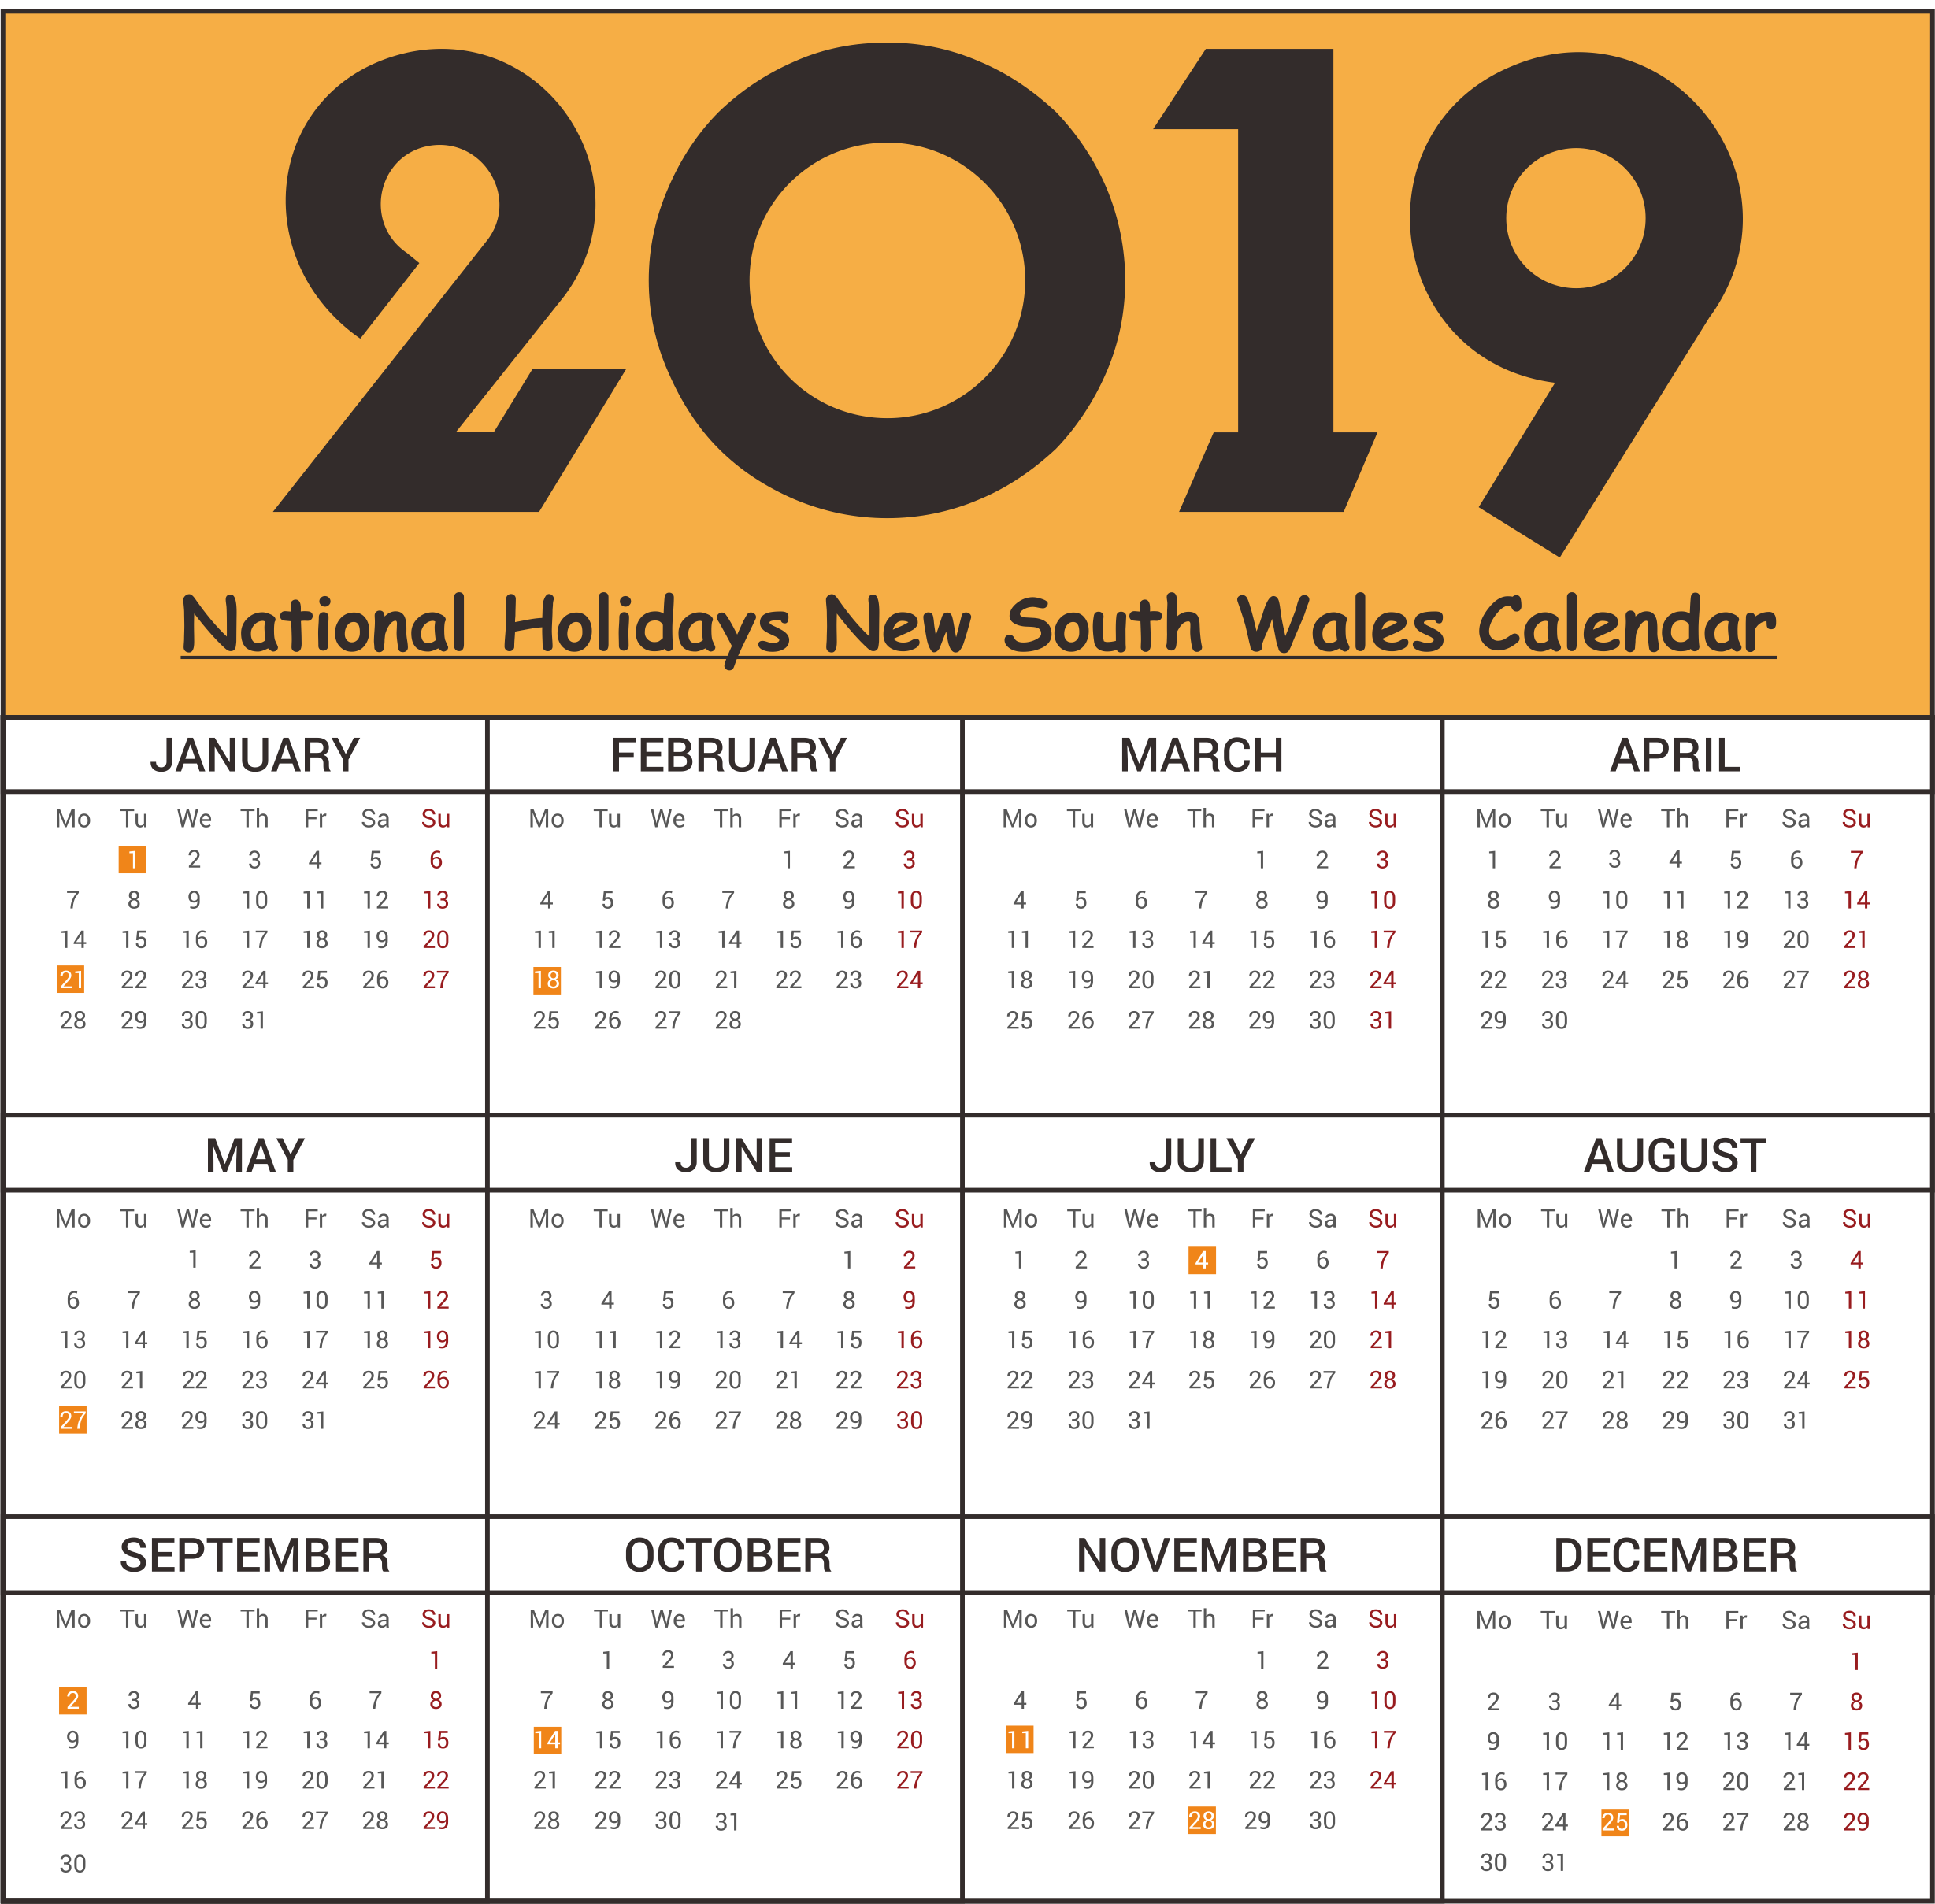 National Holidays 2019 NSW (New South Wales)